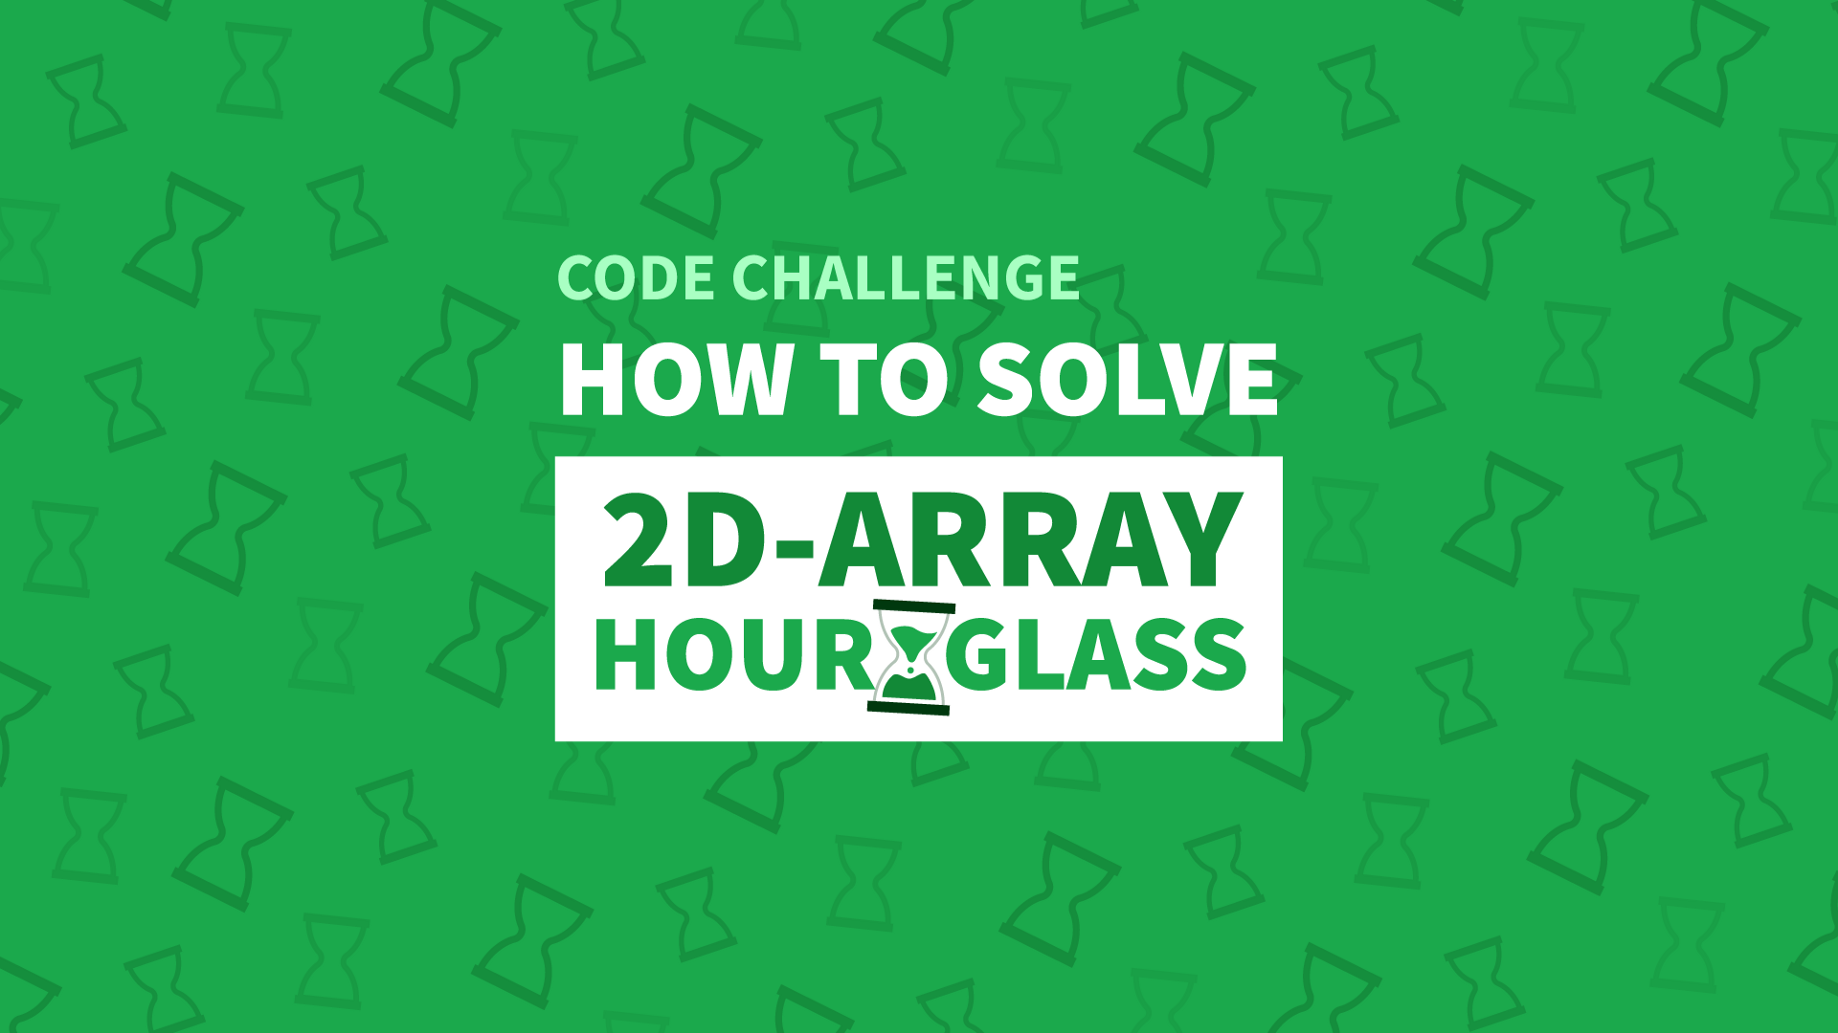 How To Solve The 2D-Array Hourglass Code Challenge - Manny Codes